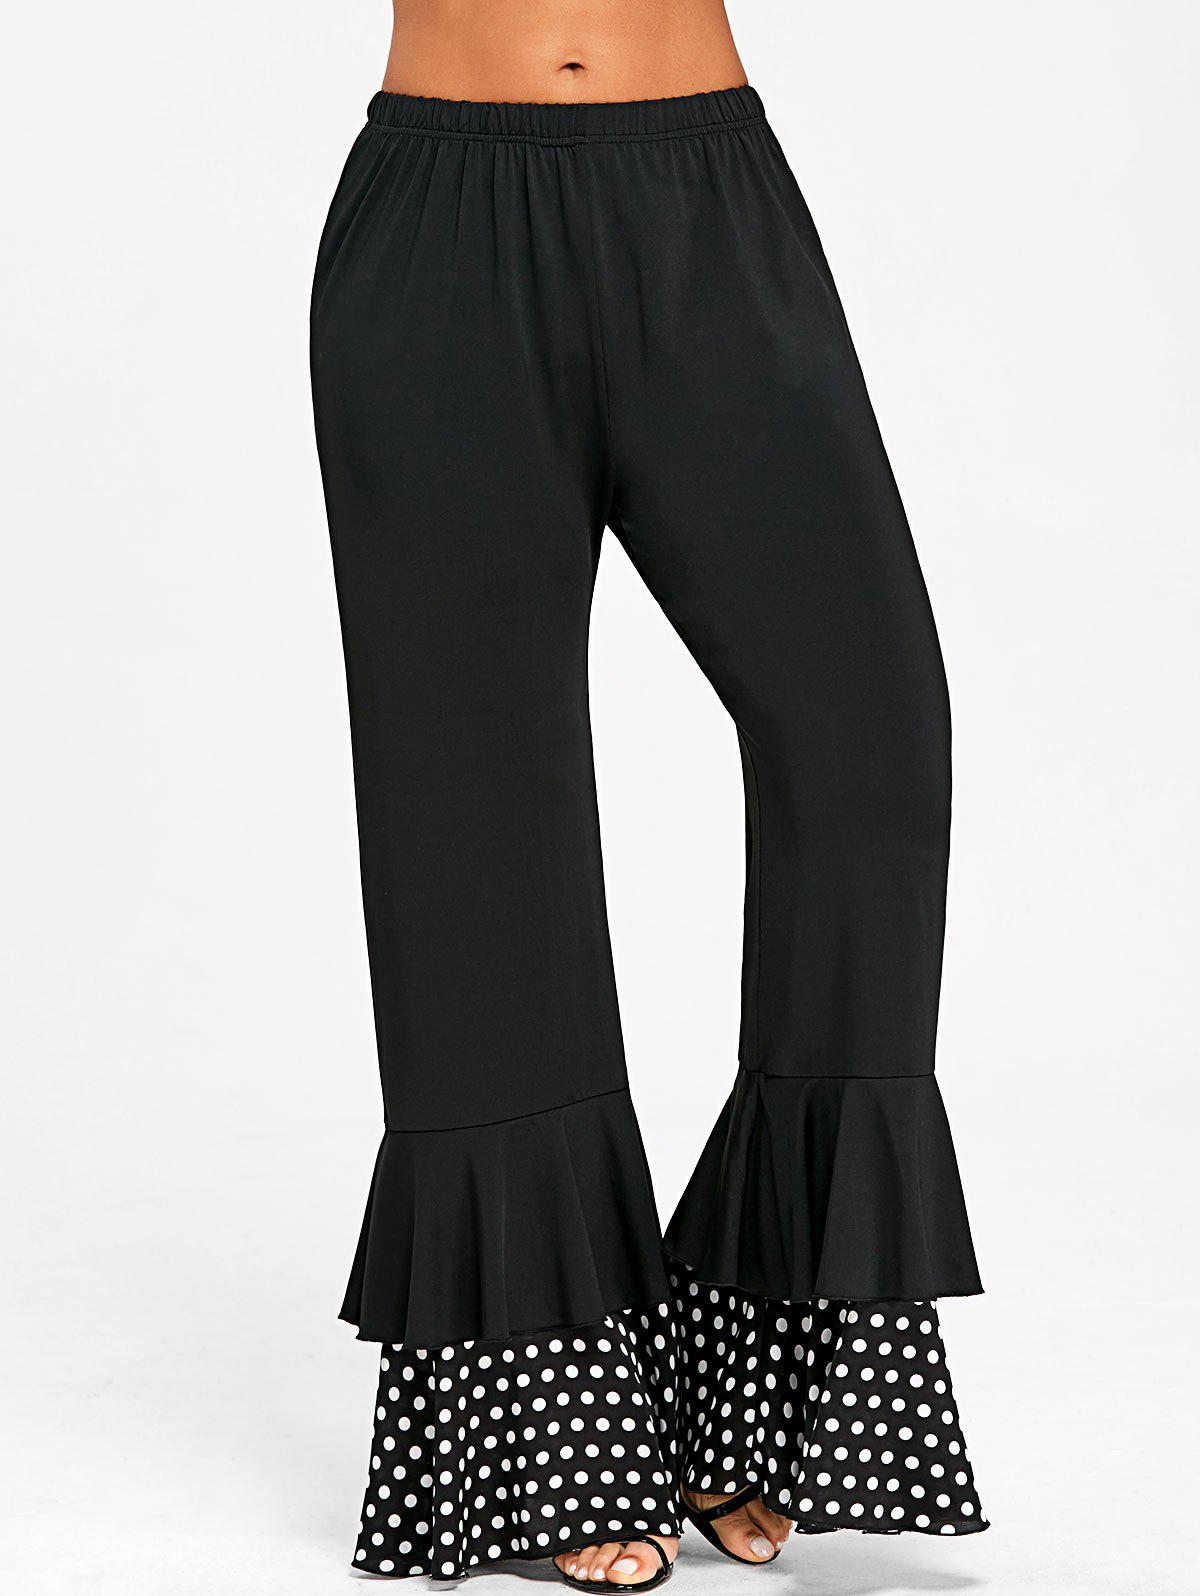 Polka Dot Insert Layered Flare Pants - BLACK L